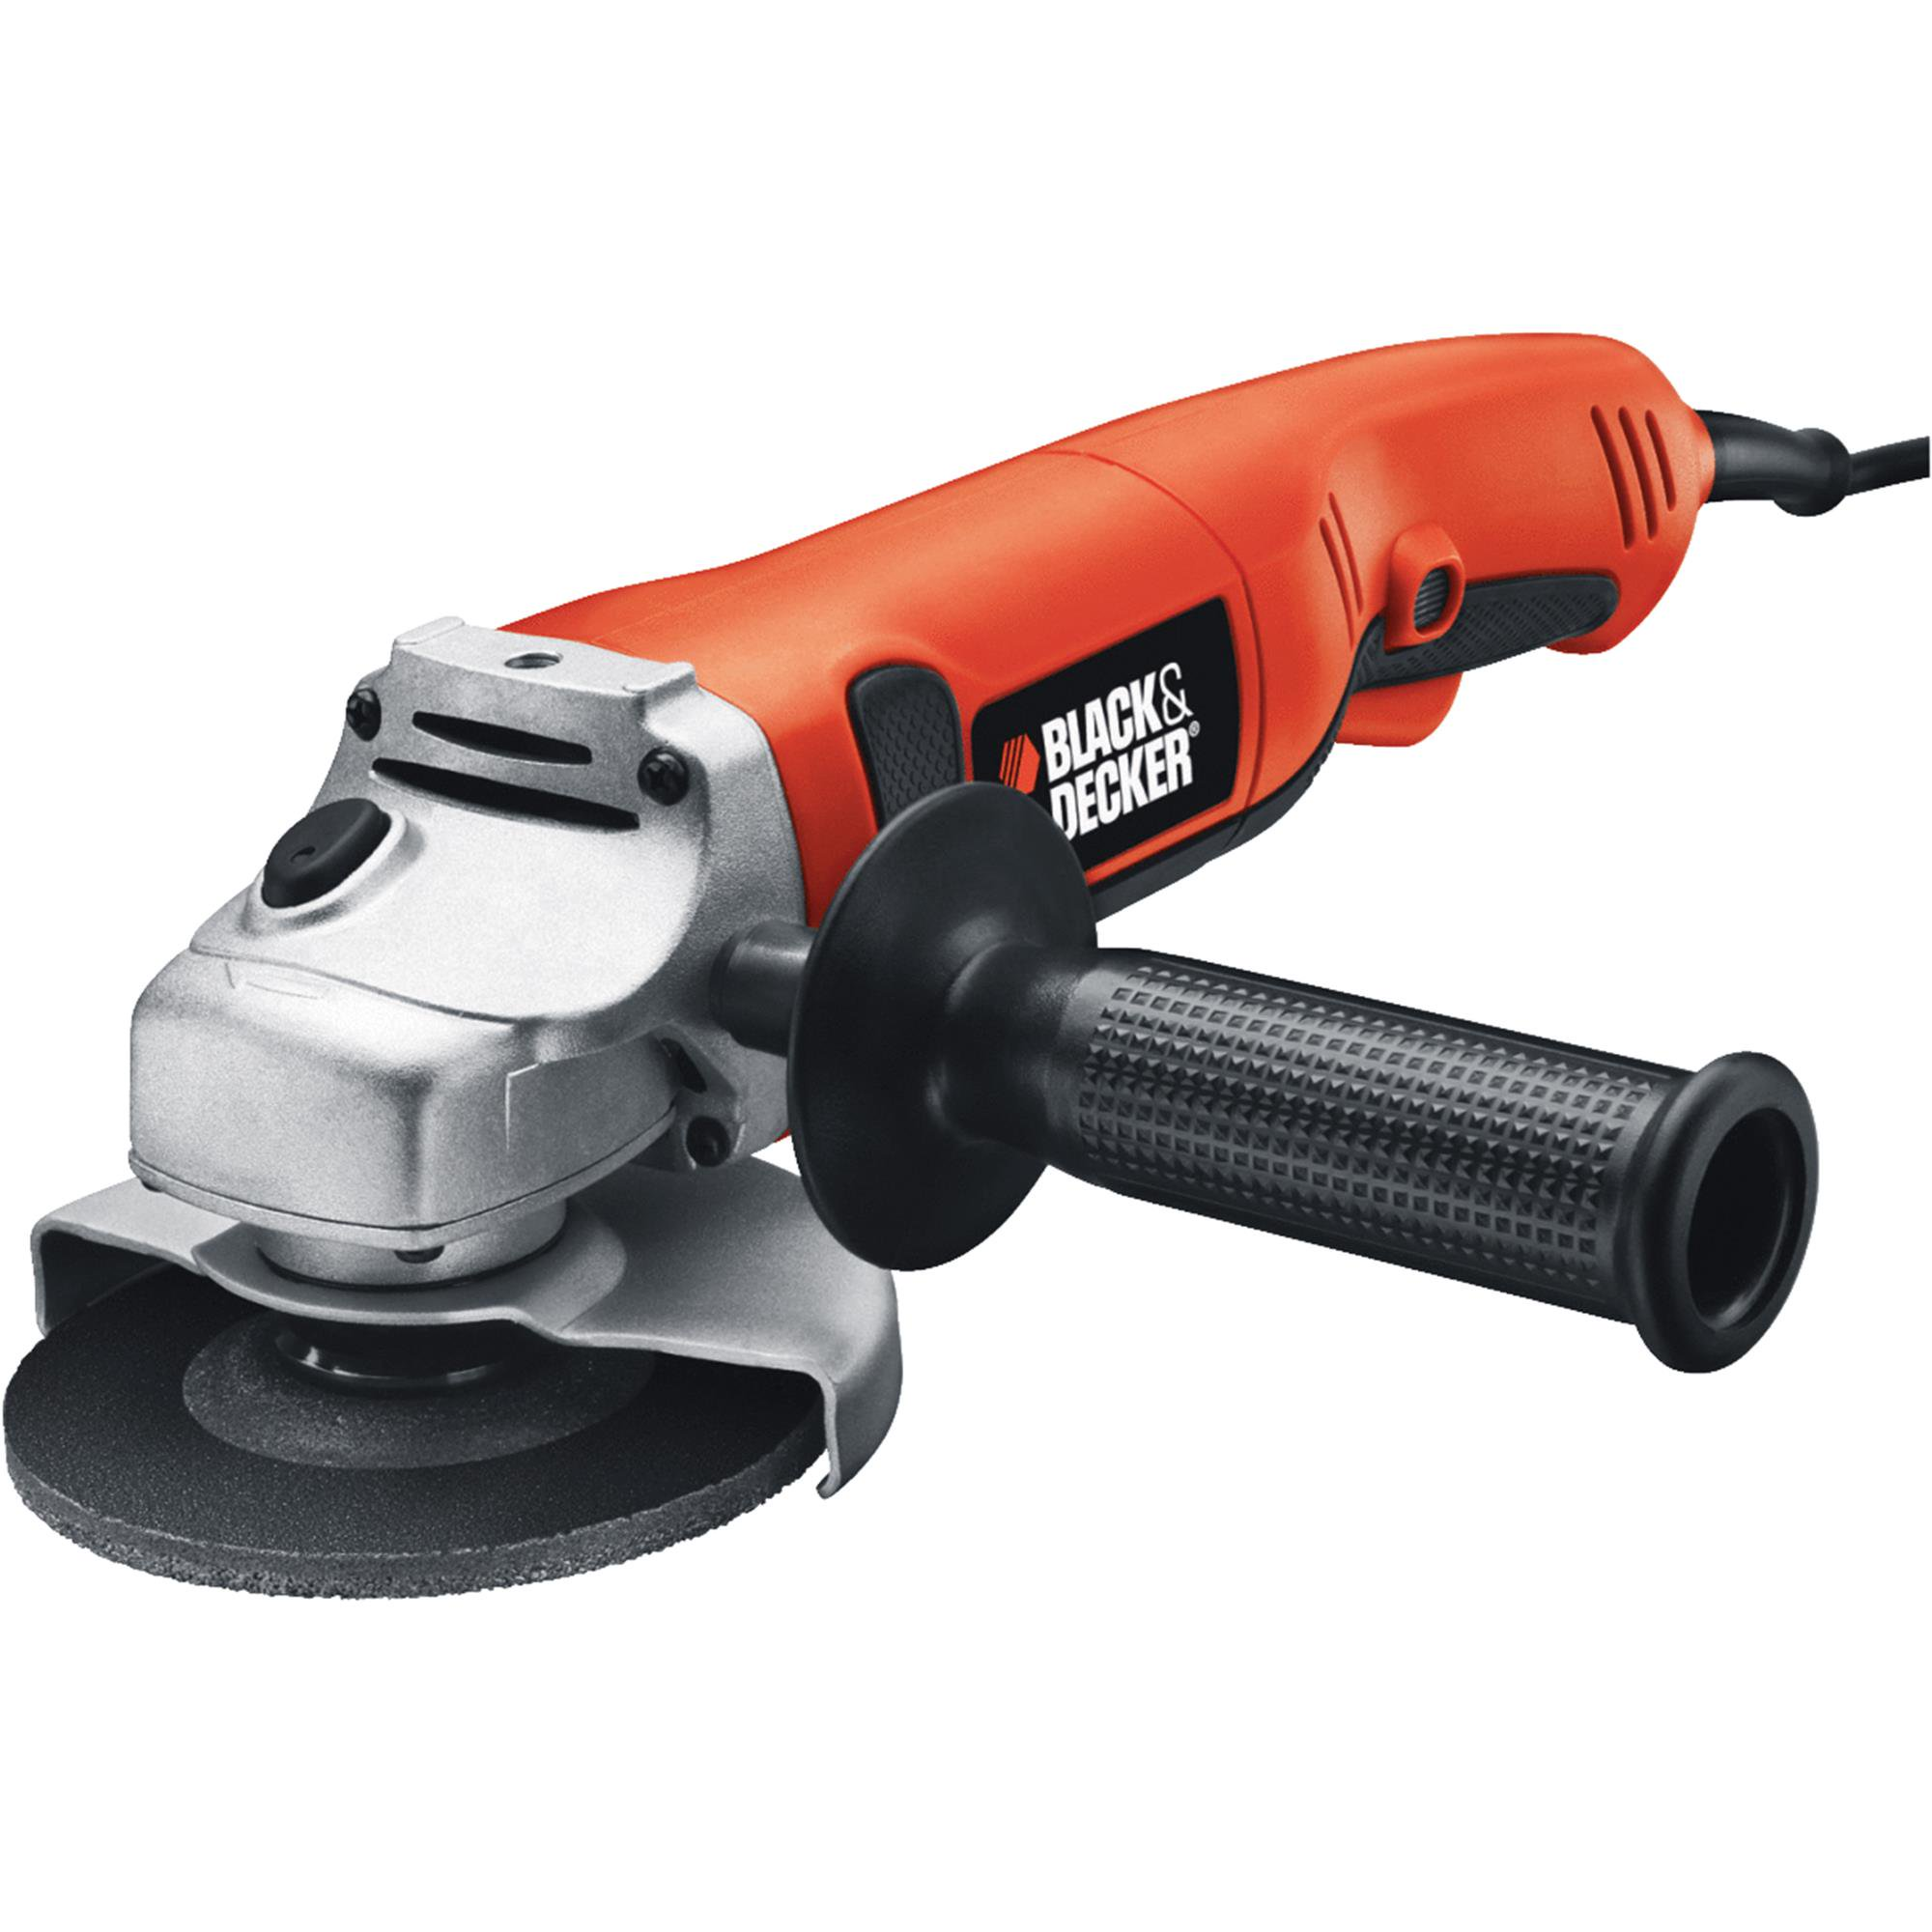 "Black & Decker Power Tools G950 1 4-1 2"" Small Angle Grinder by Black & Decker/Dewalt"